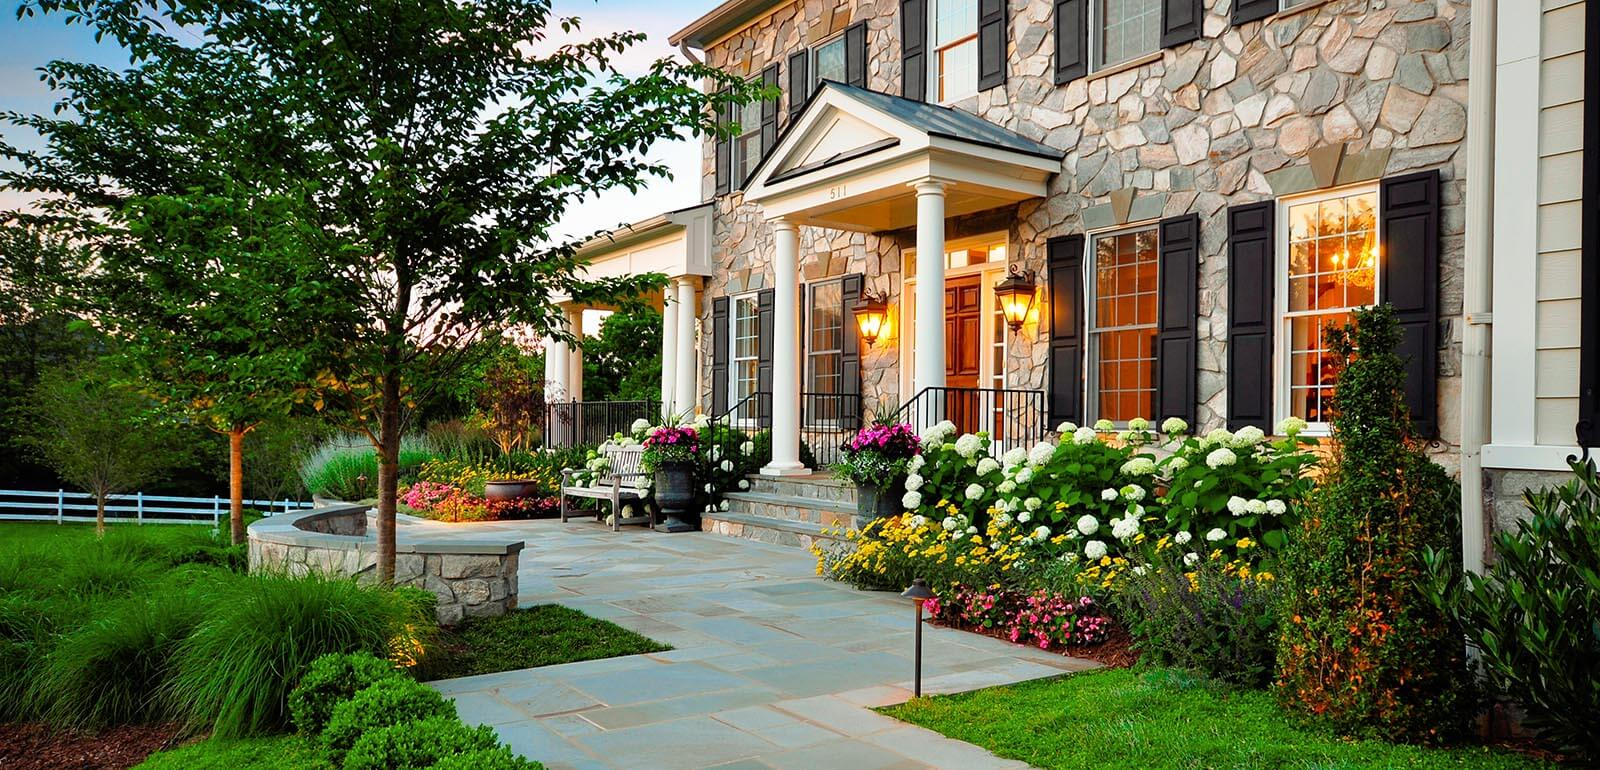 22 Most Beautiful Front Yard Landscaping Designs & Ideas ... on Landscape Design Ideas  id=58920